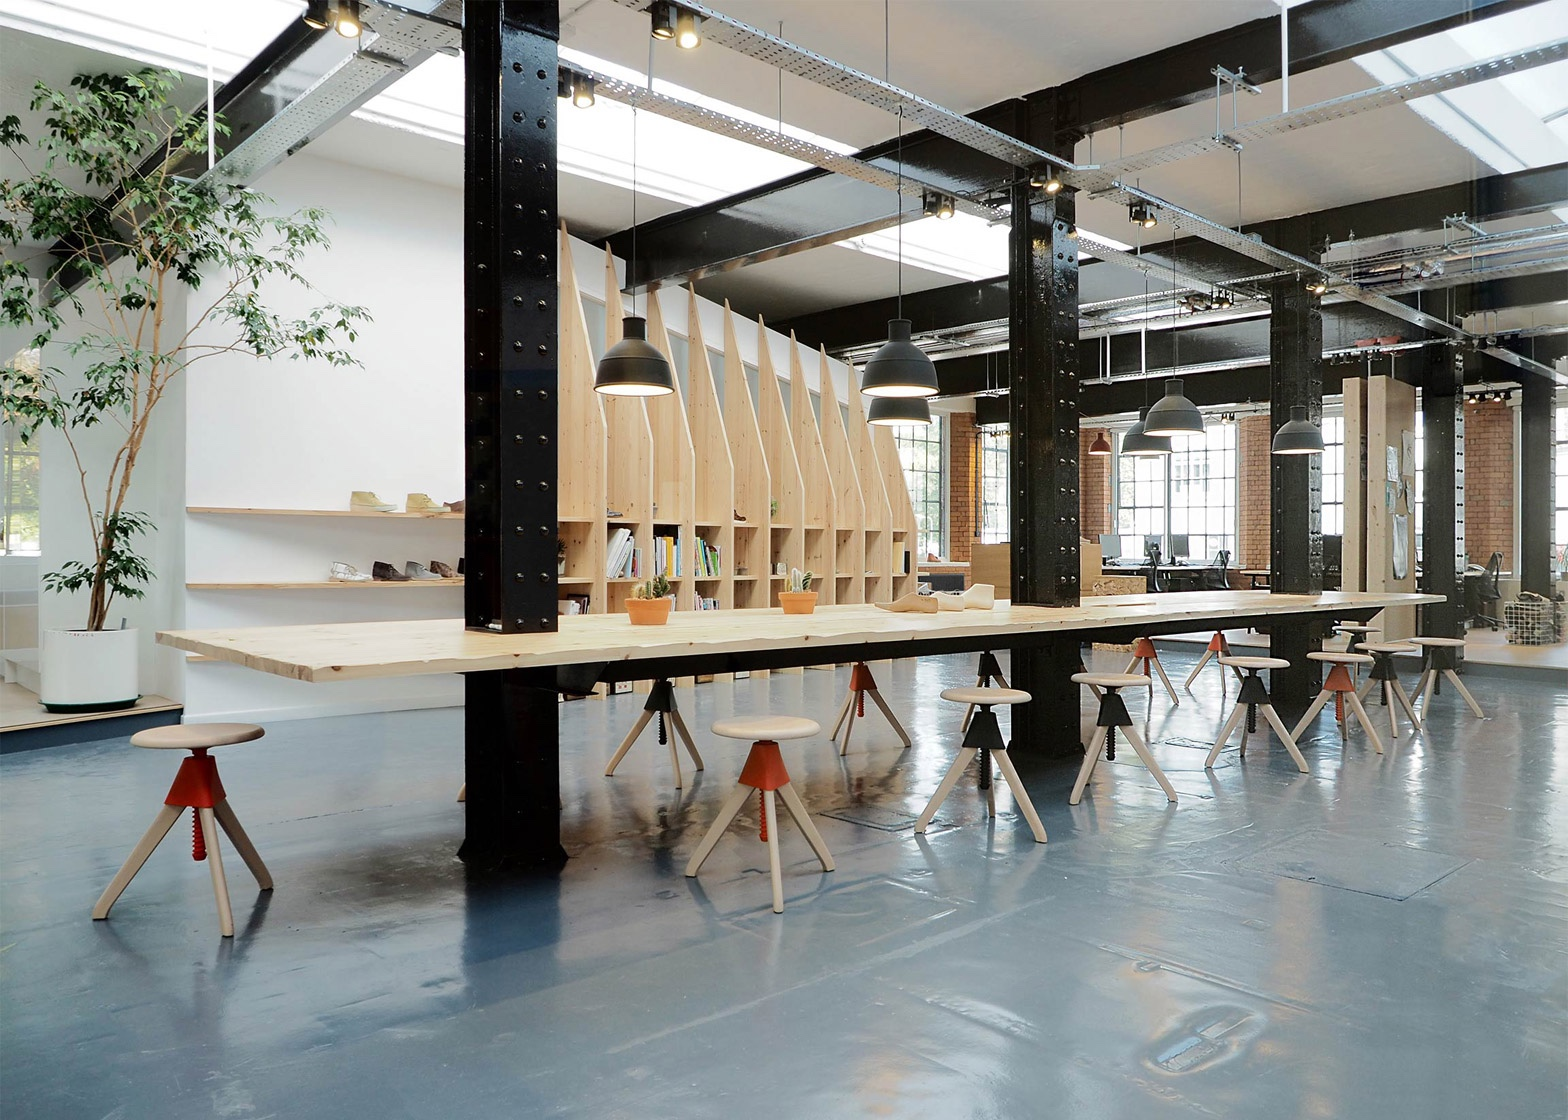 Paris-based ARRO Studio transformed a 19th-century warehouse into a modish design studio for trusted British shoe brand Clarks. Image via Dezeen.